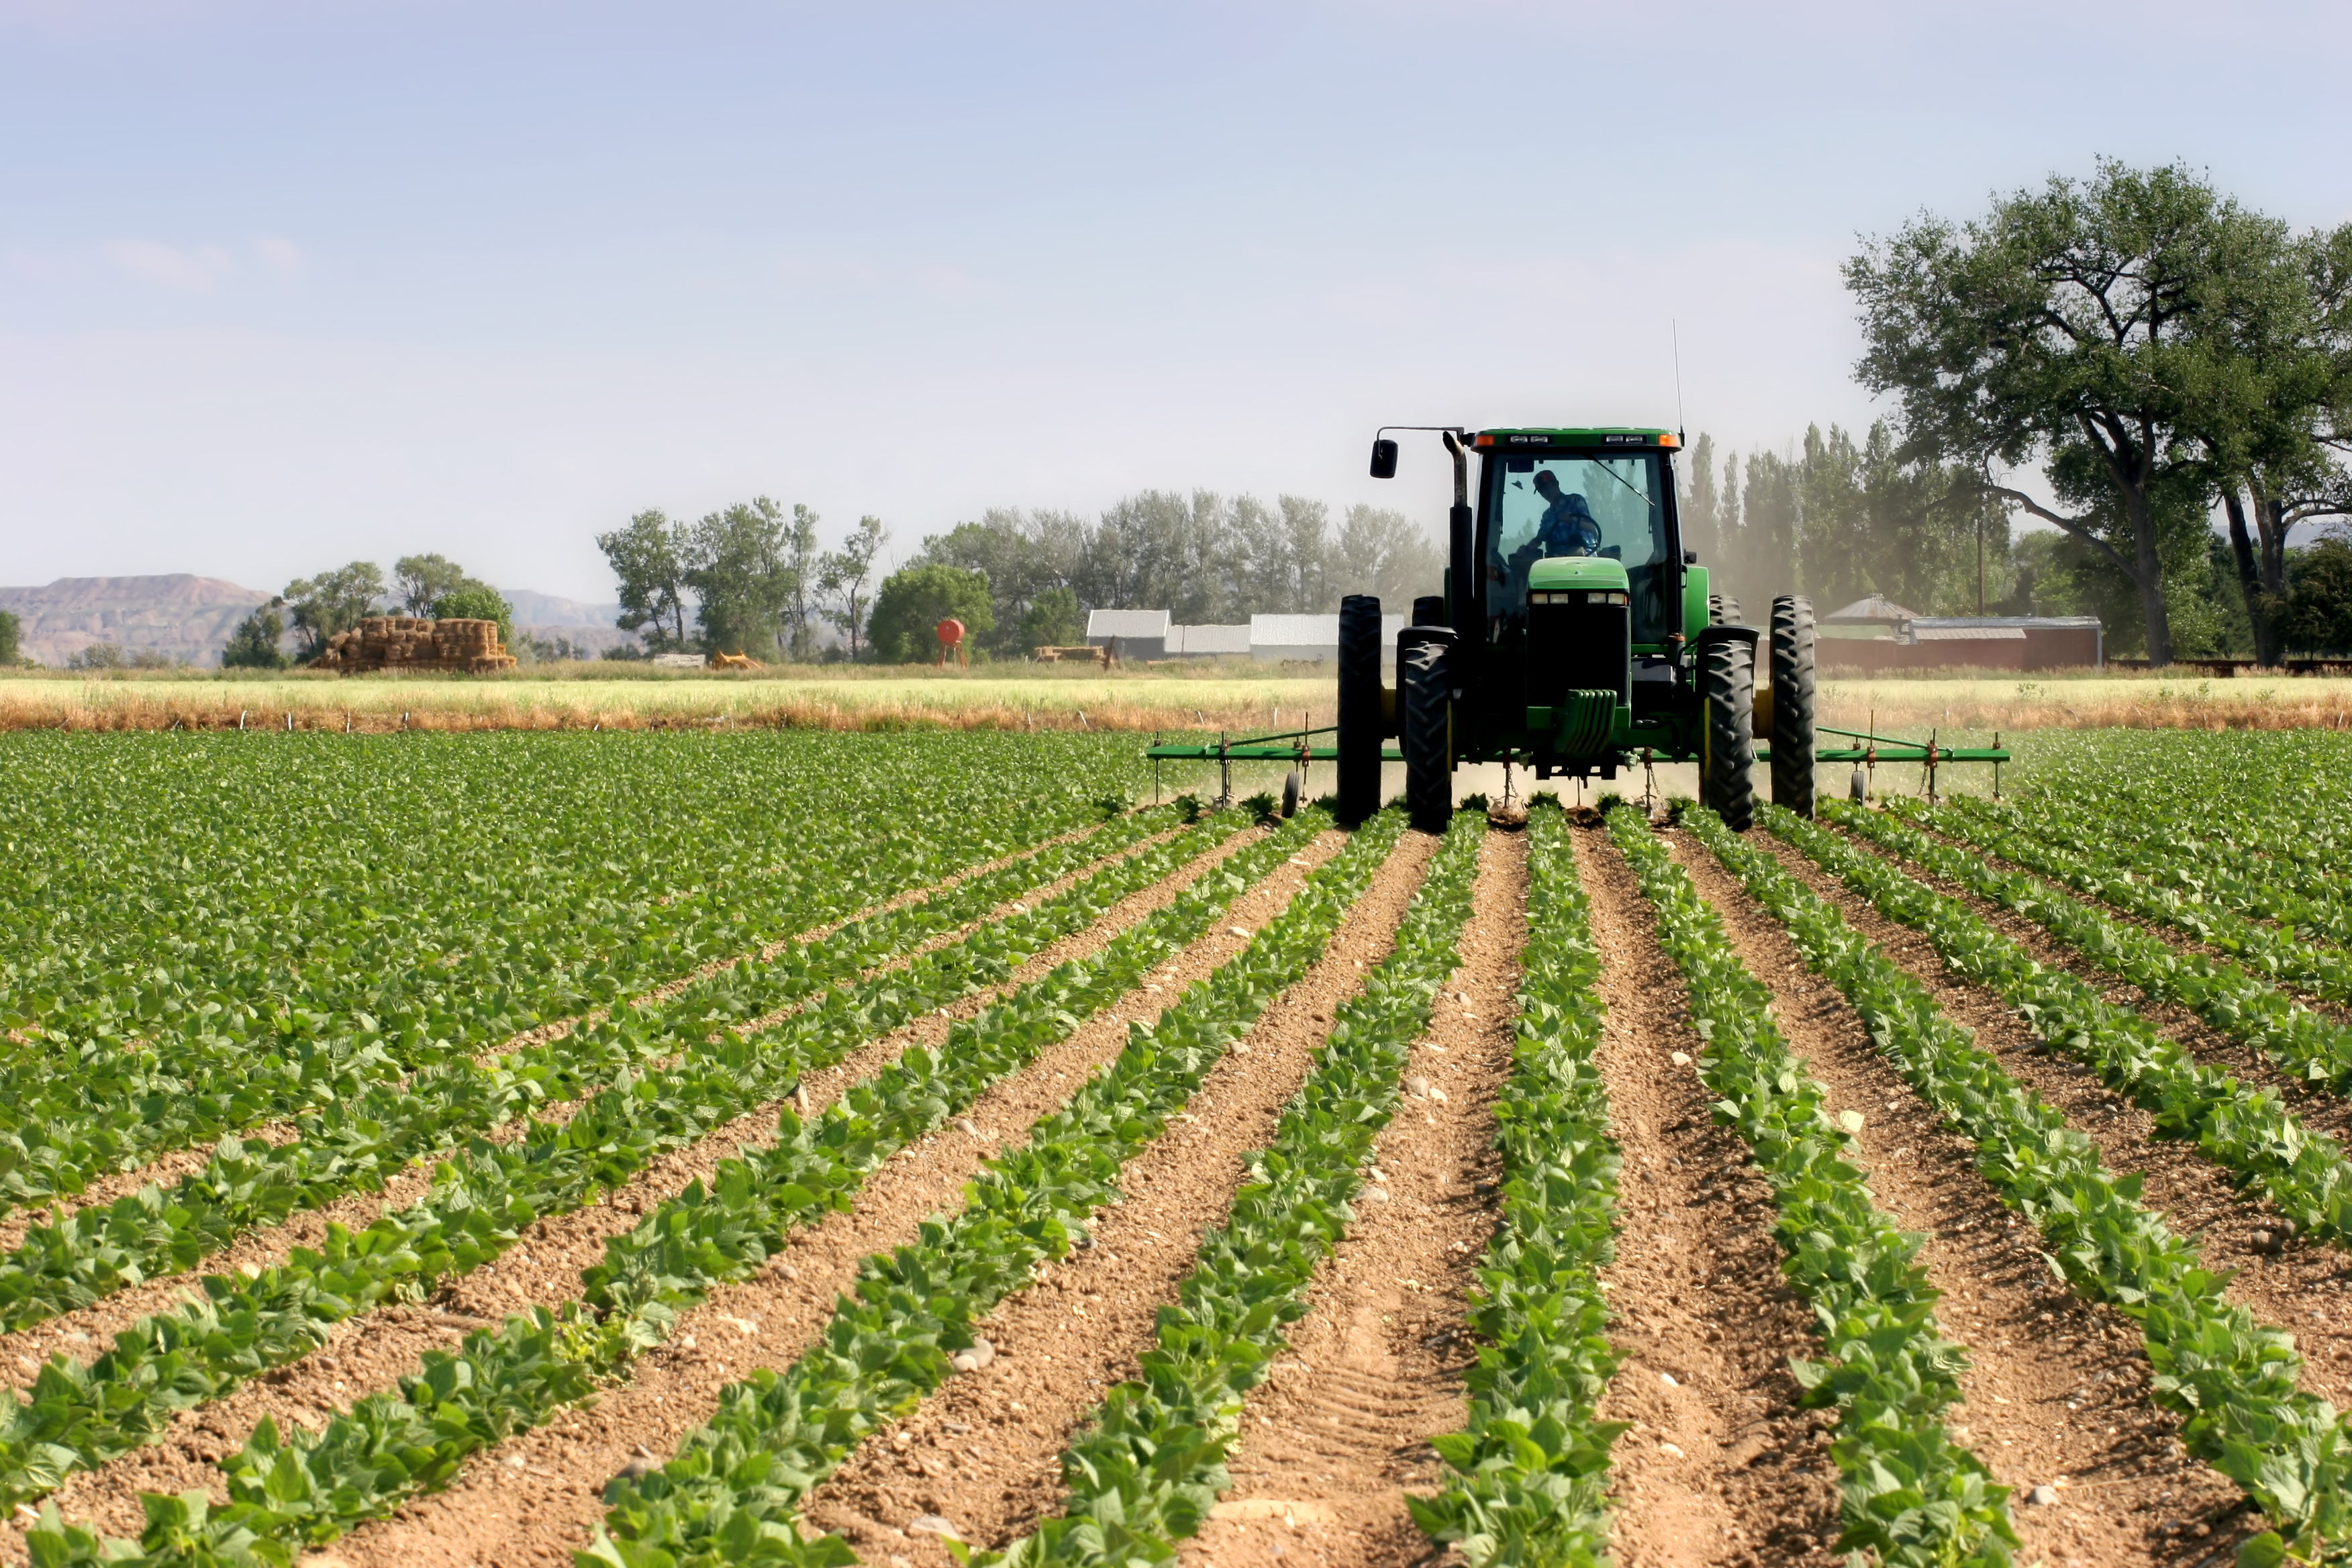 Agriculture is our gateway to industrialisation